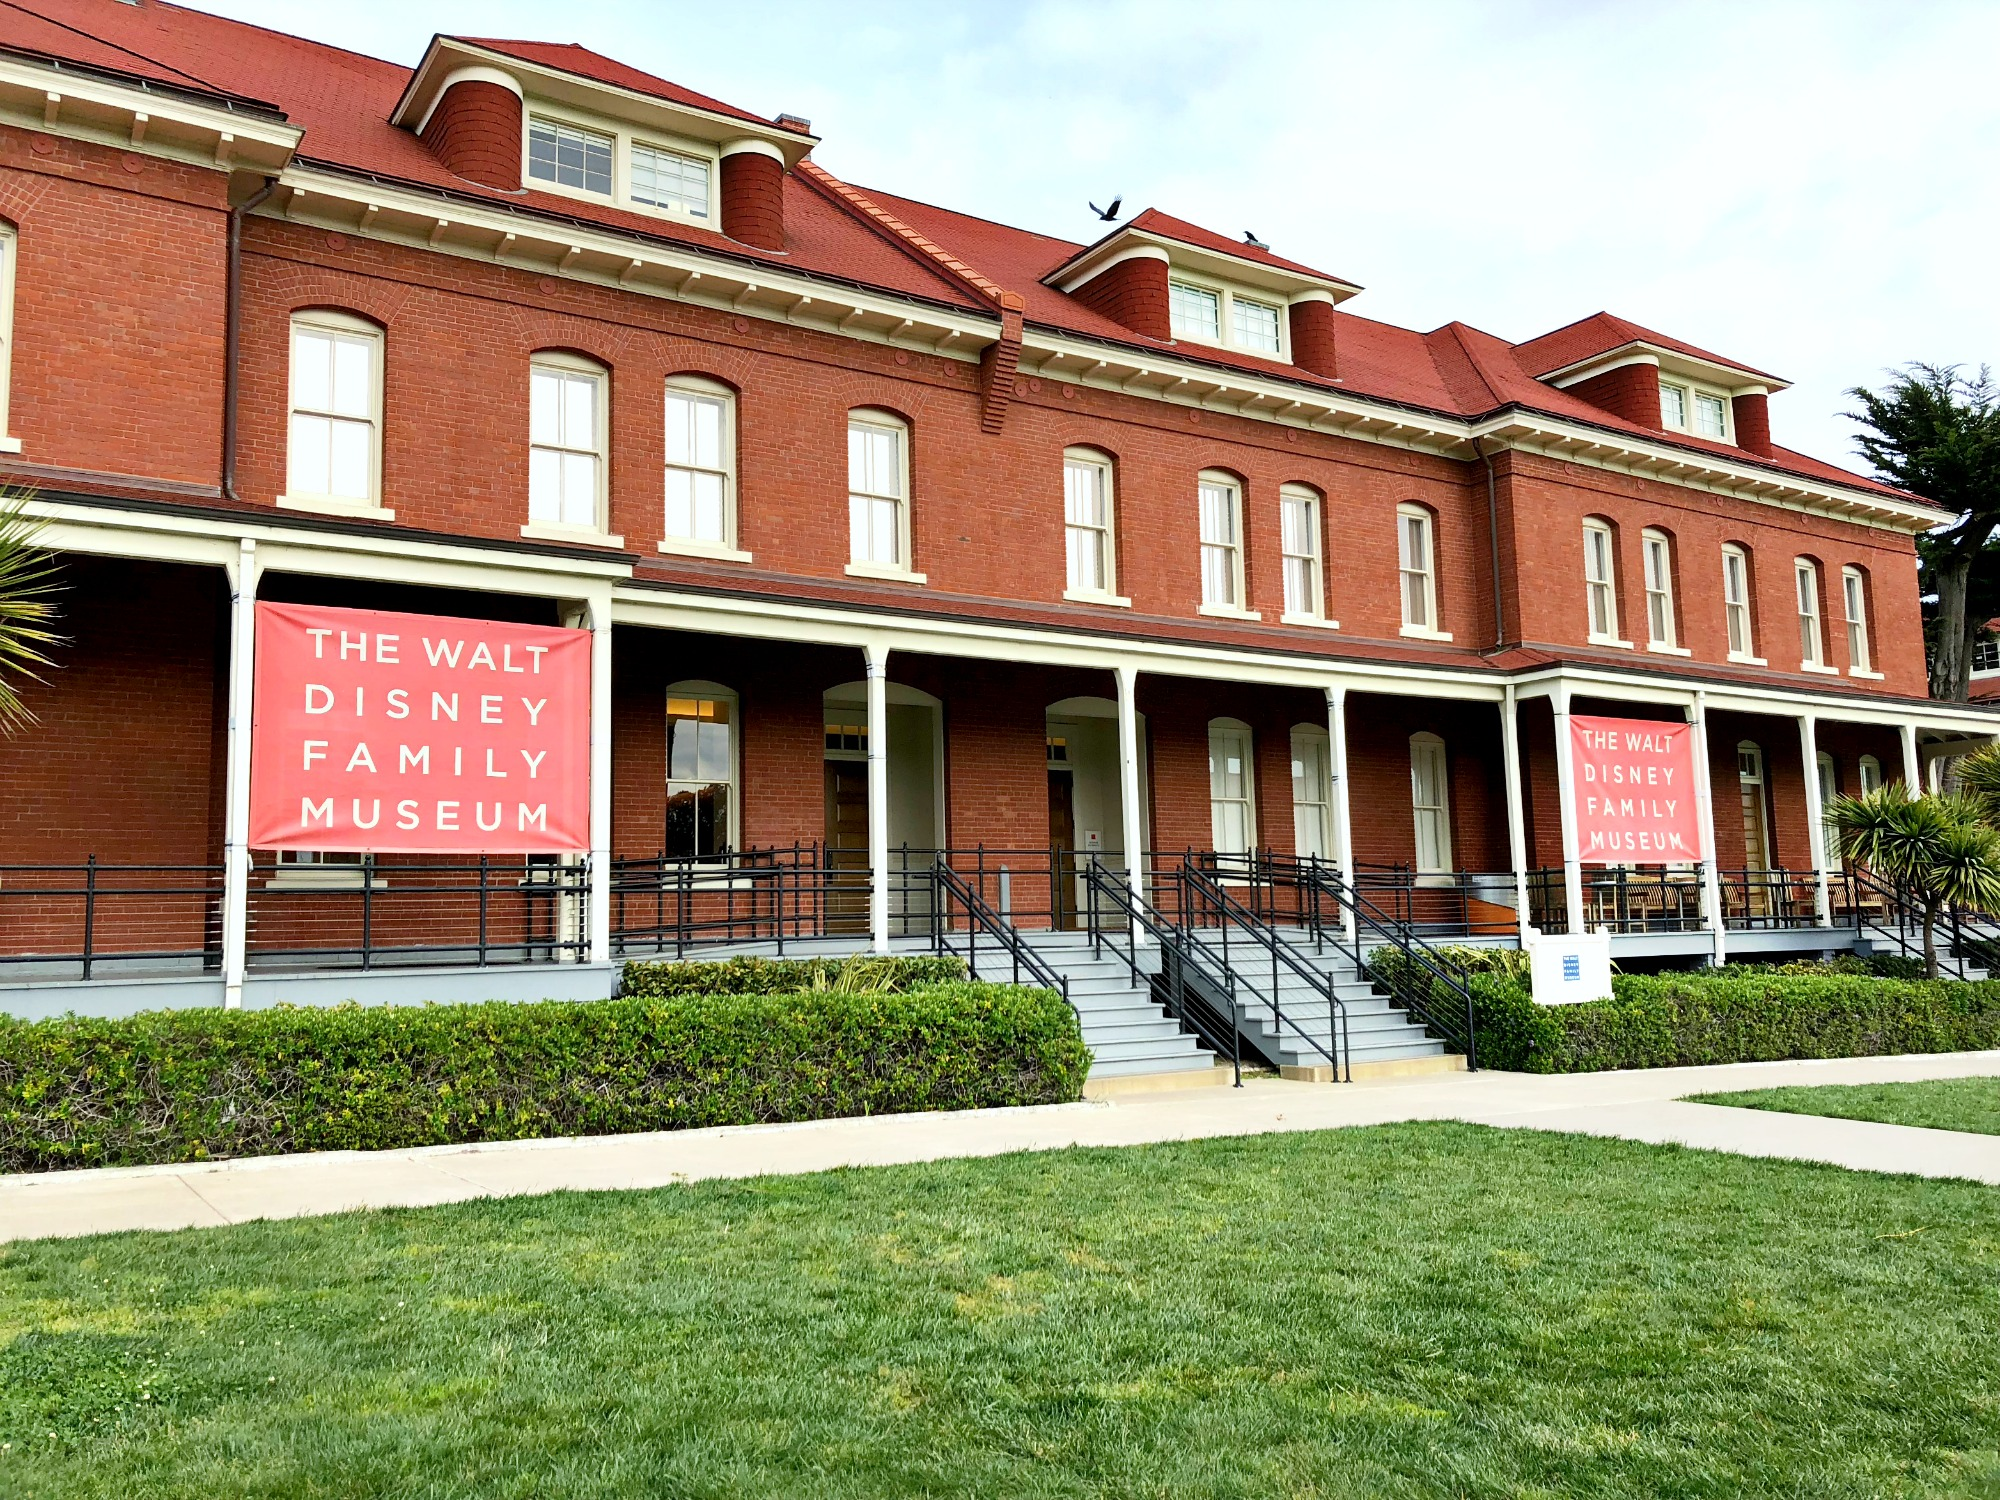 go on a tour of The Walt Disney Family Museum